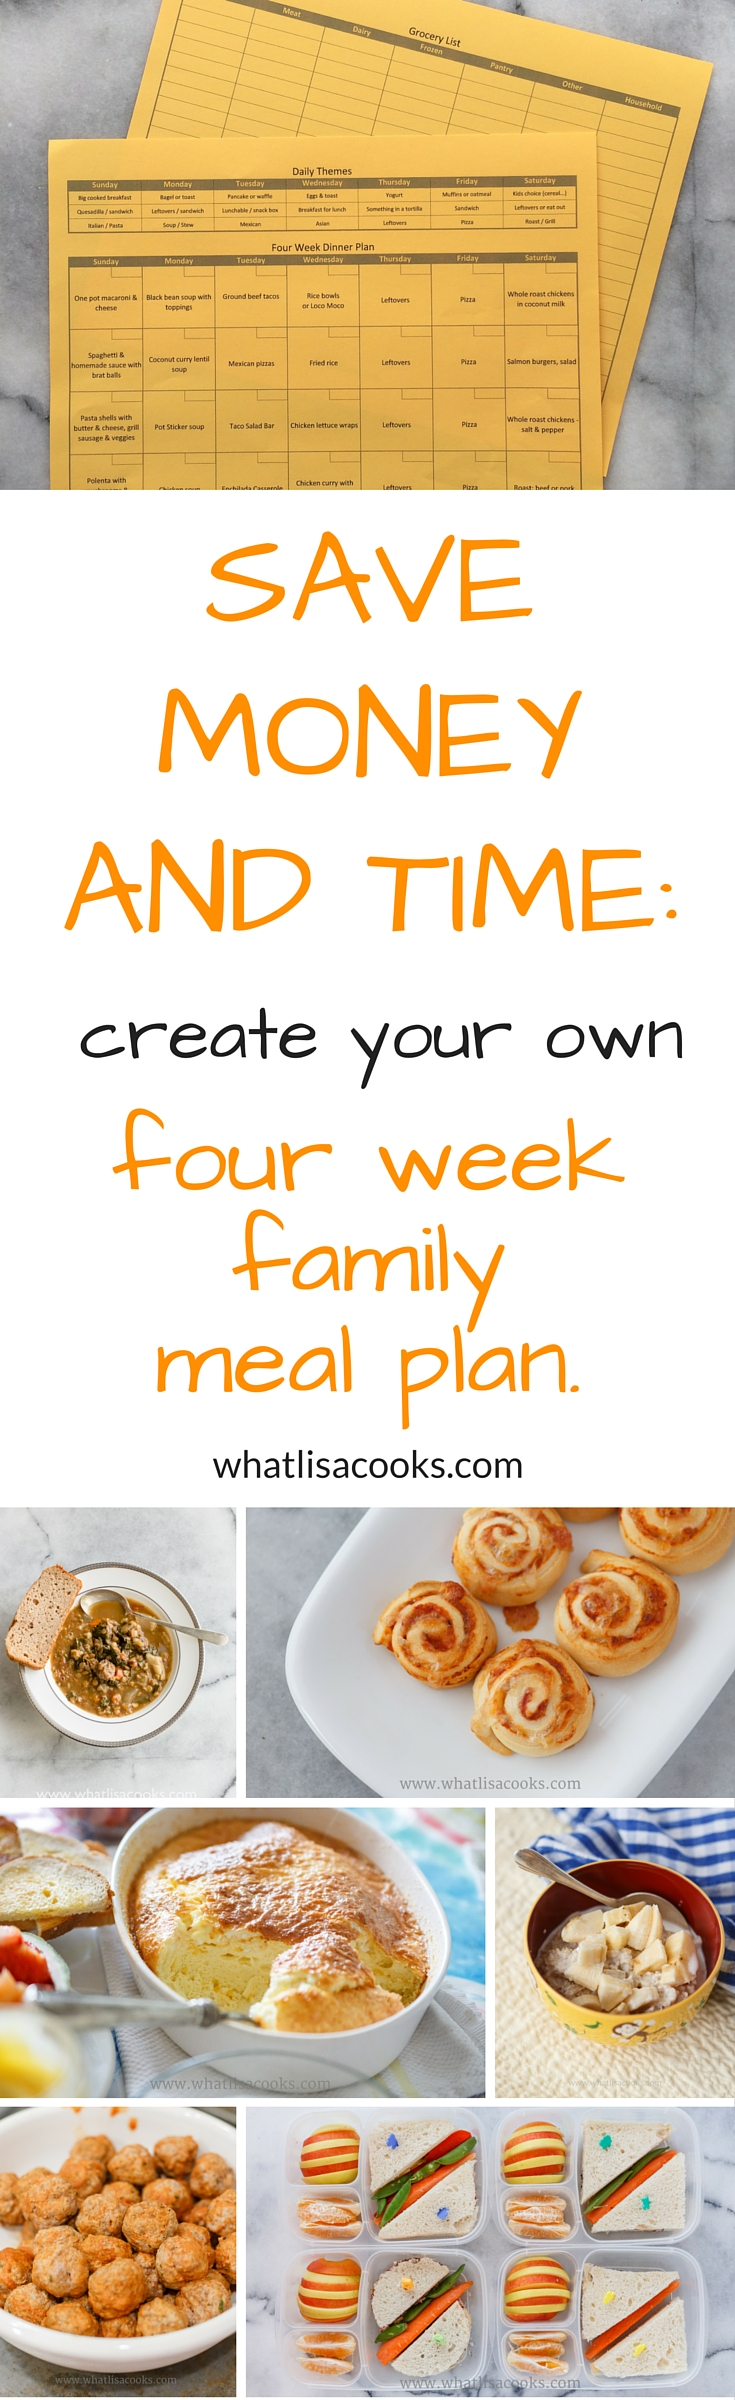 Save money and time by creating your own four week family meal plan. whatlisacooks.com